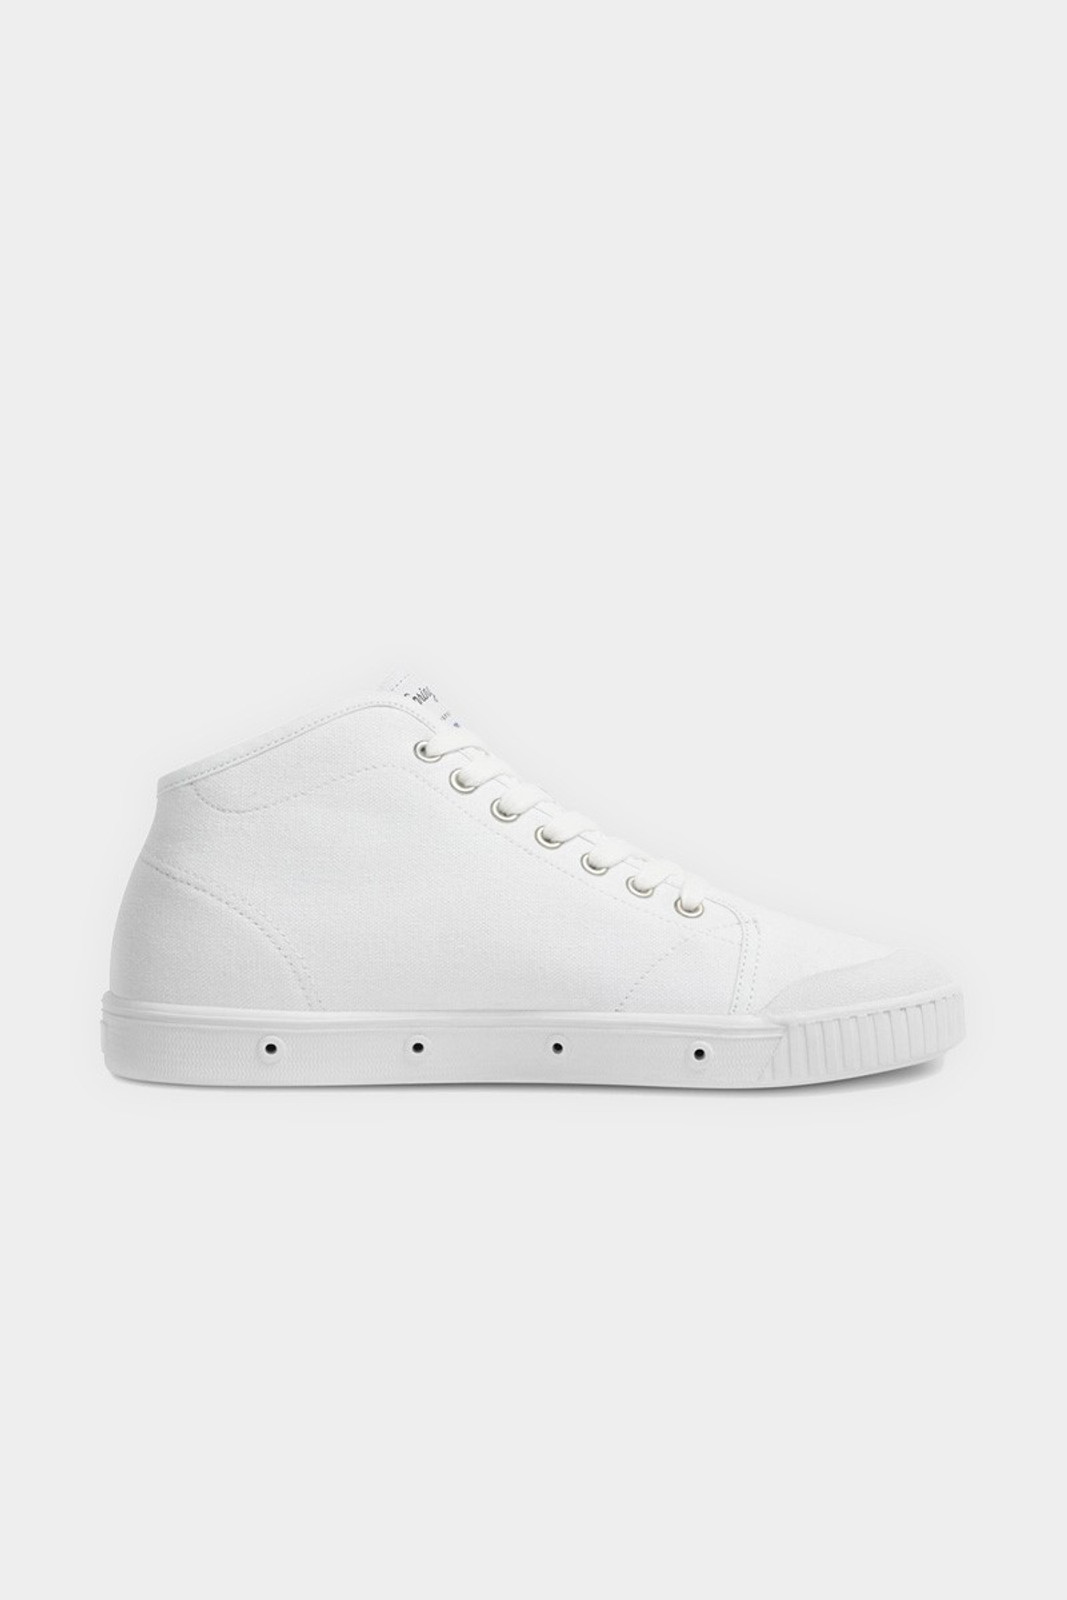 Elka Collective B2 WOMENS CANVAS White  2